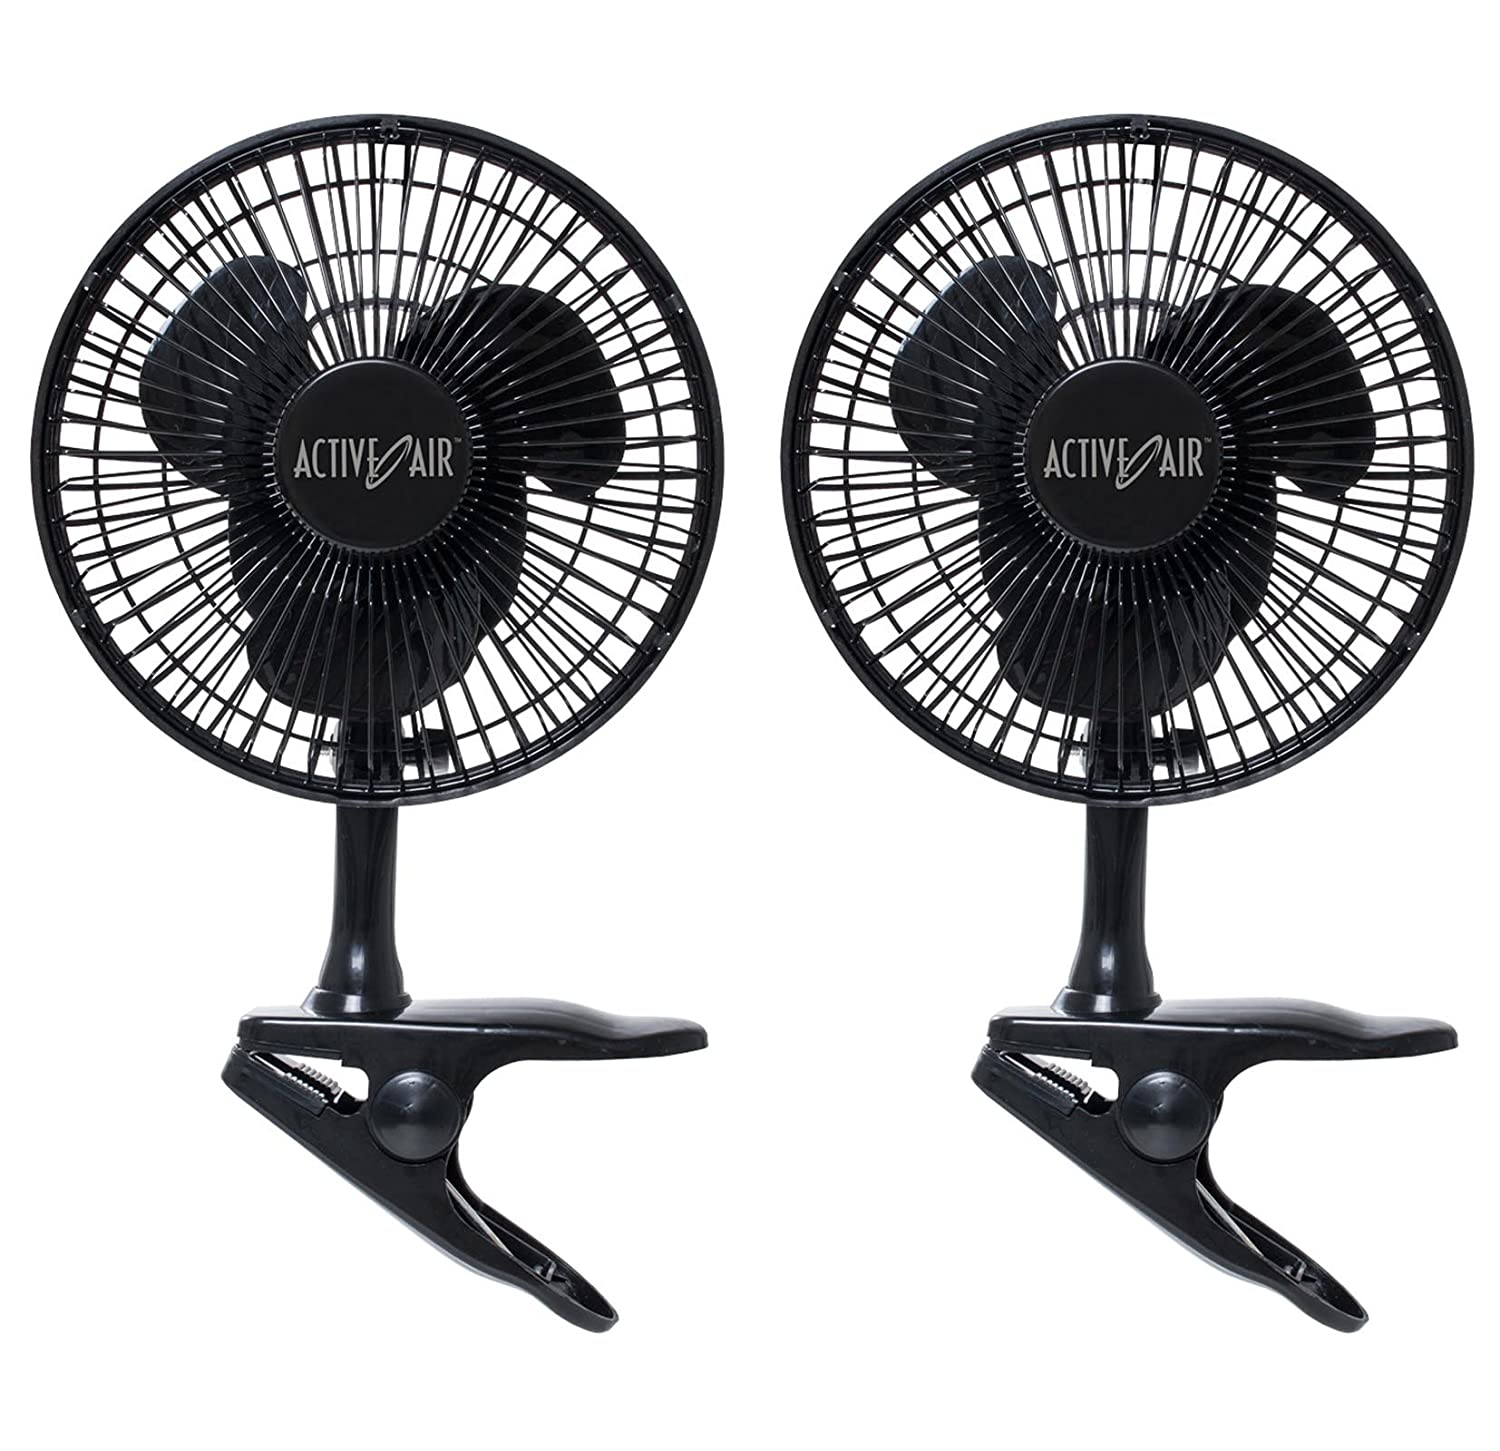 "(2) Active Air 6"" 5W Magnetic Drive Clip On Grow Fans w/ Brushless Motor 